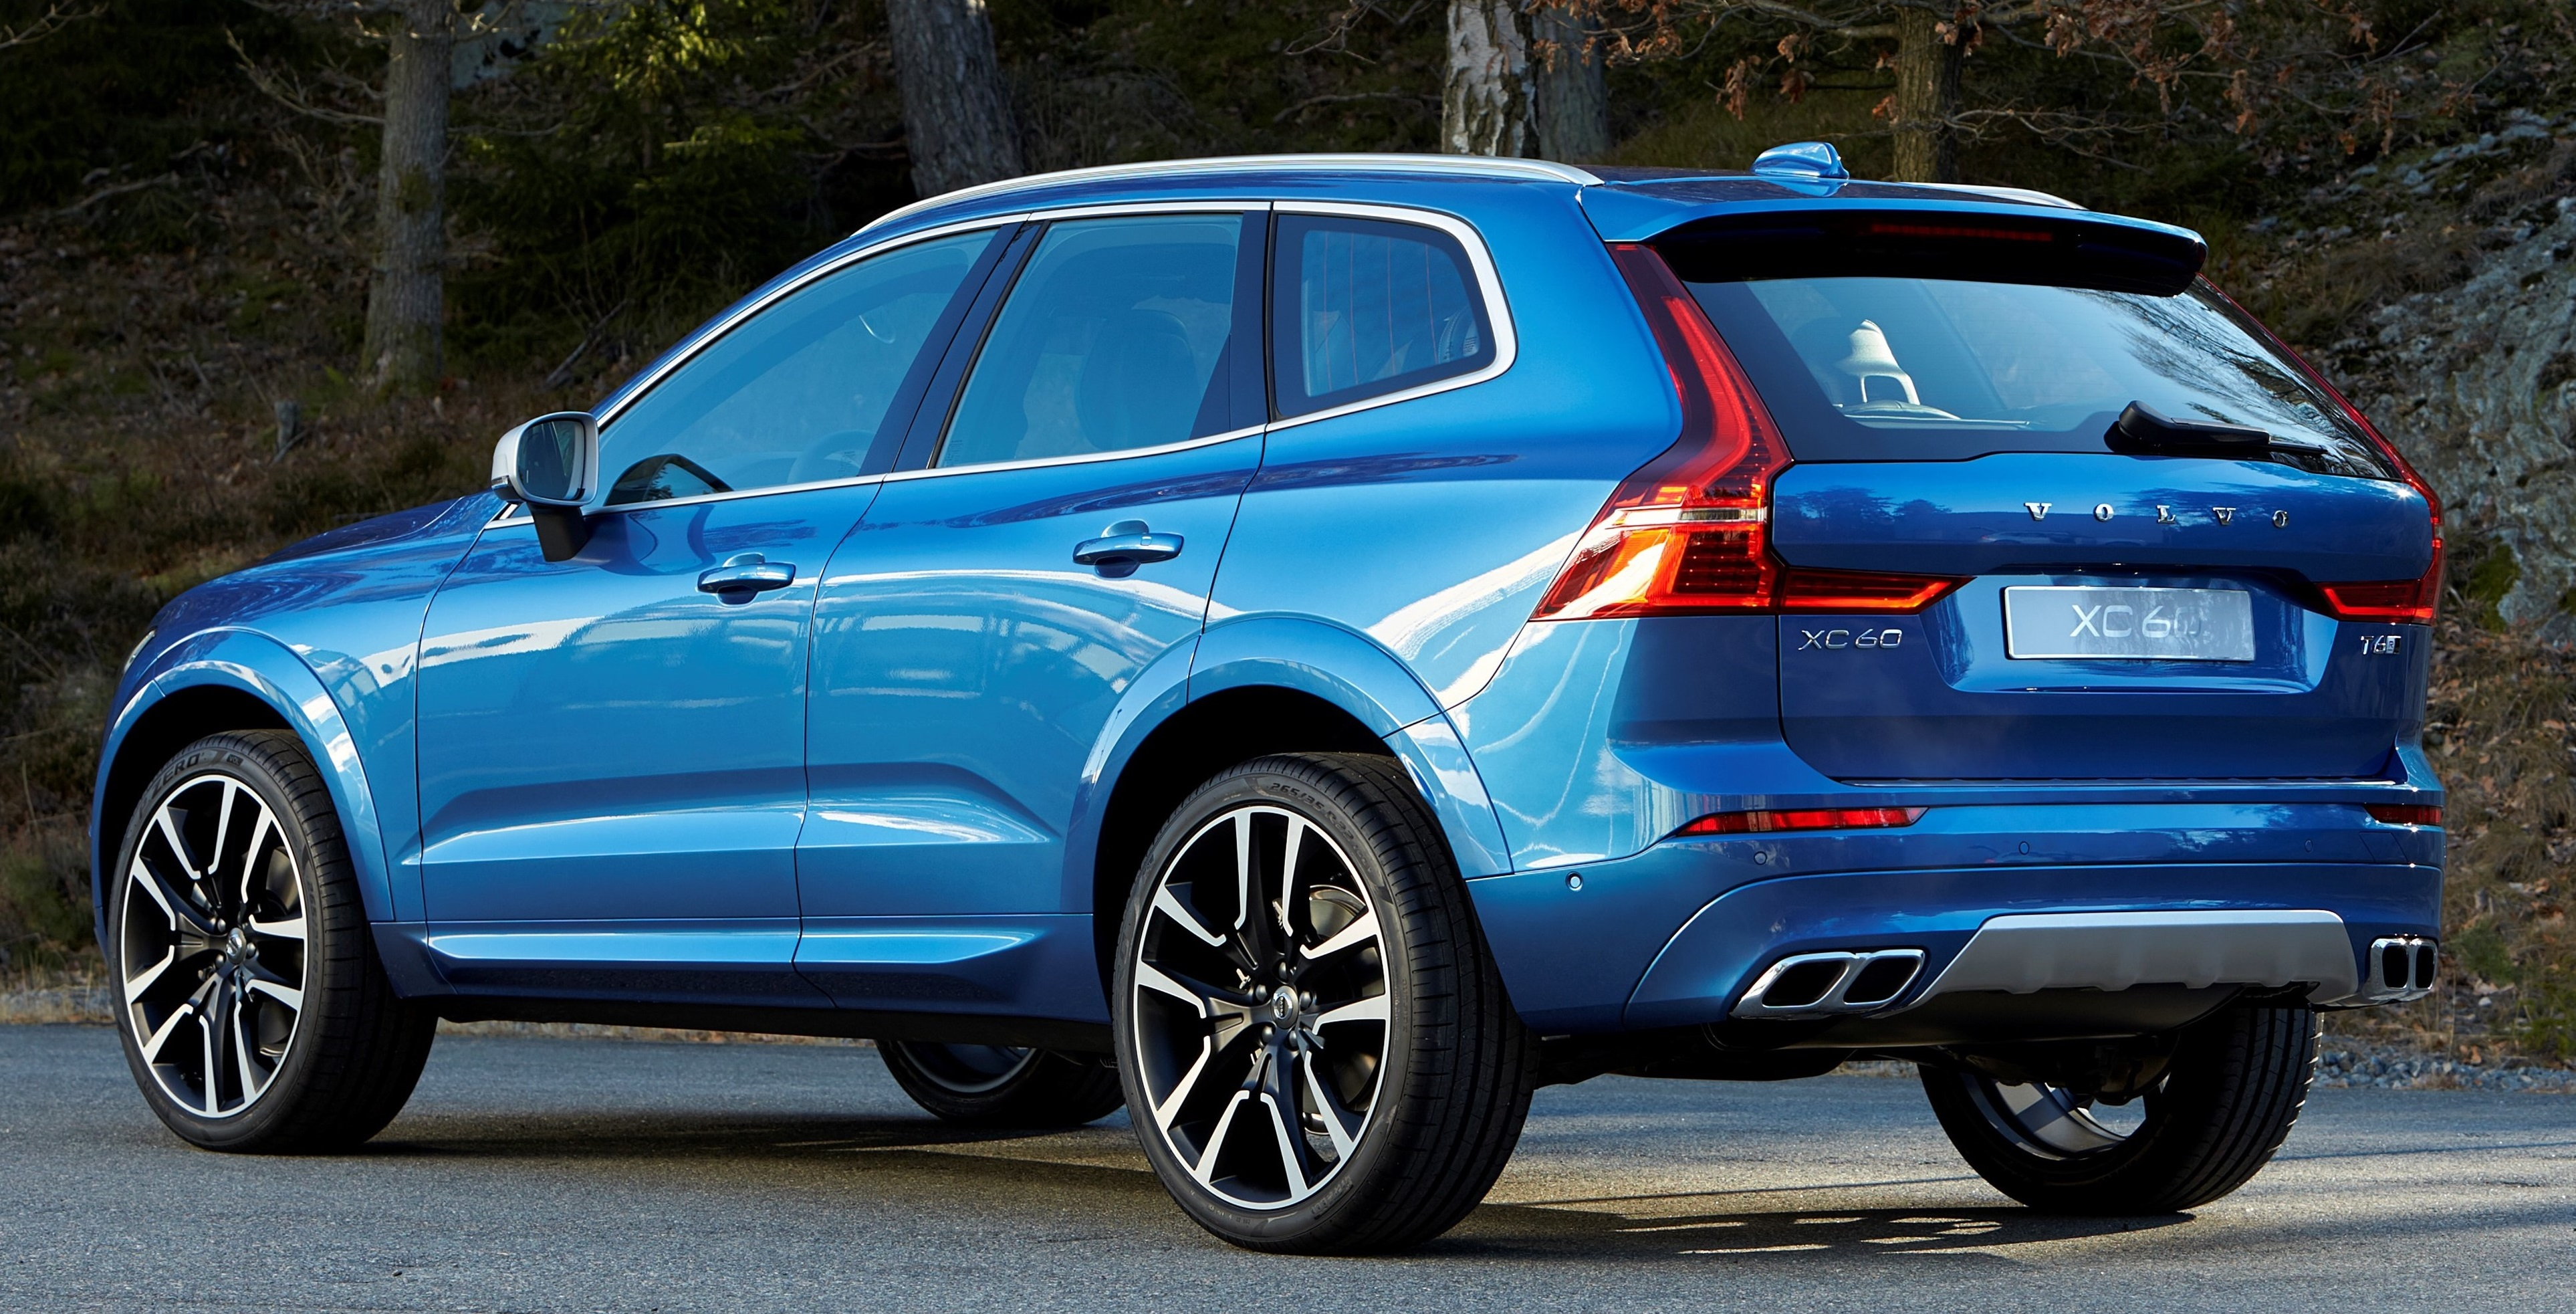 r lineup line version plug crystal white design opens tops new in volvo hybrid the production